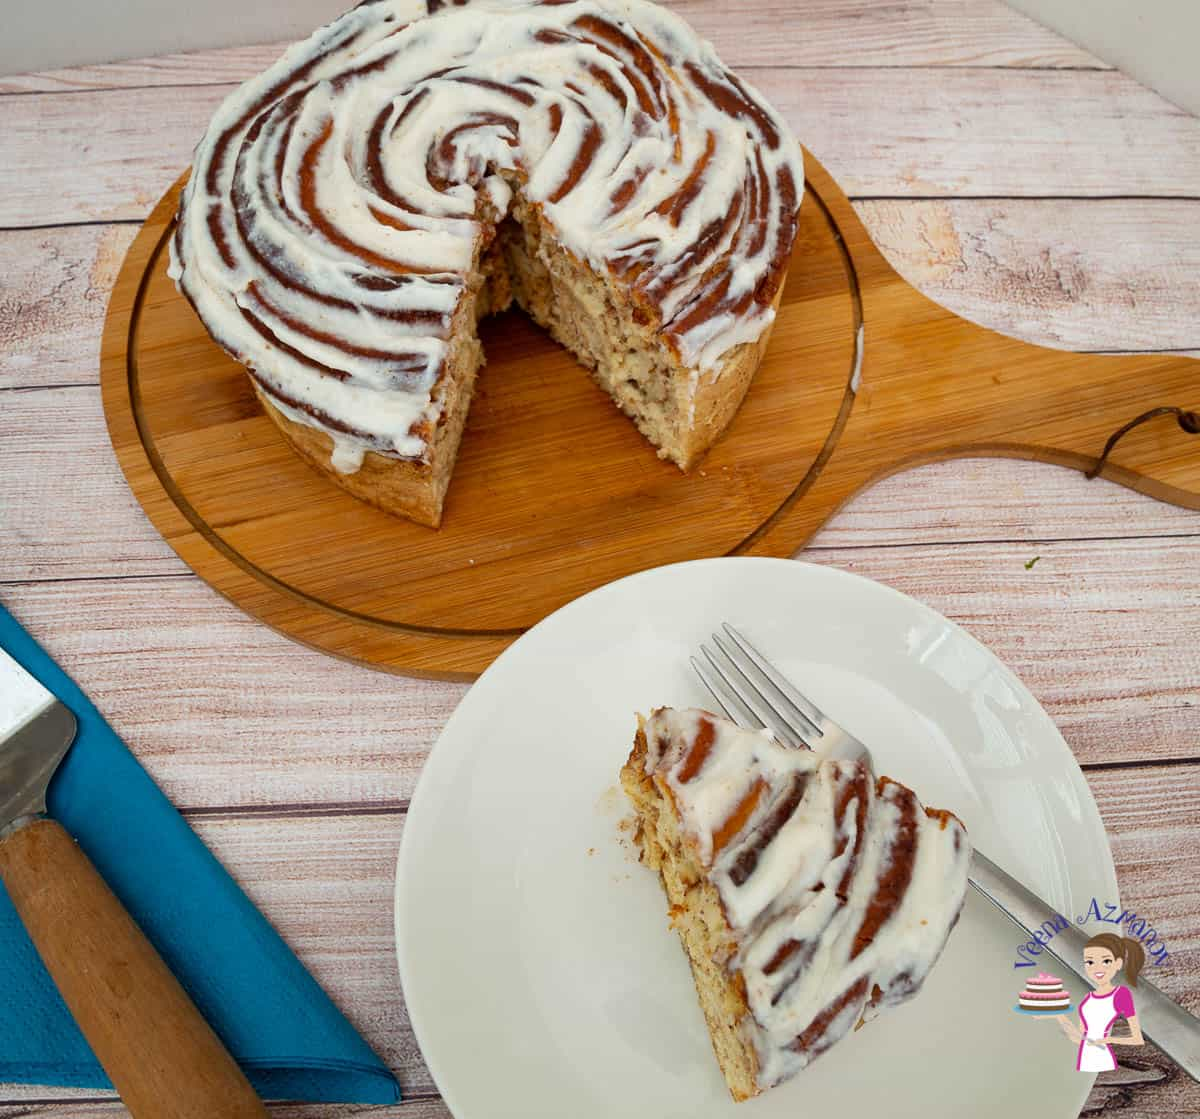 A giant cinnamon roll on a wooden board and a slice of it on a plate.